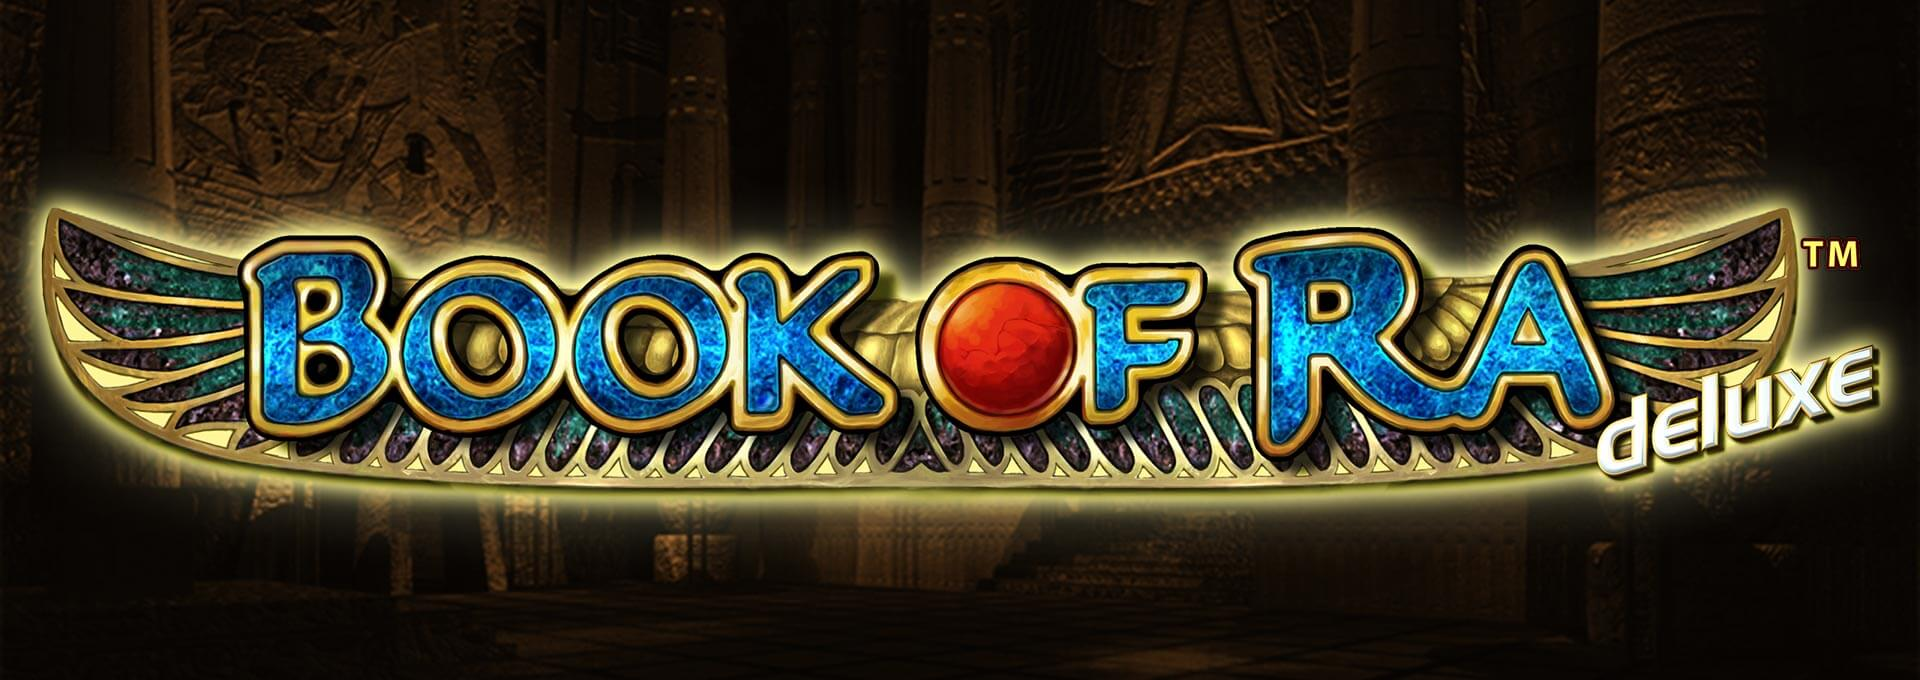 caesars casino online book of ra free download